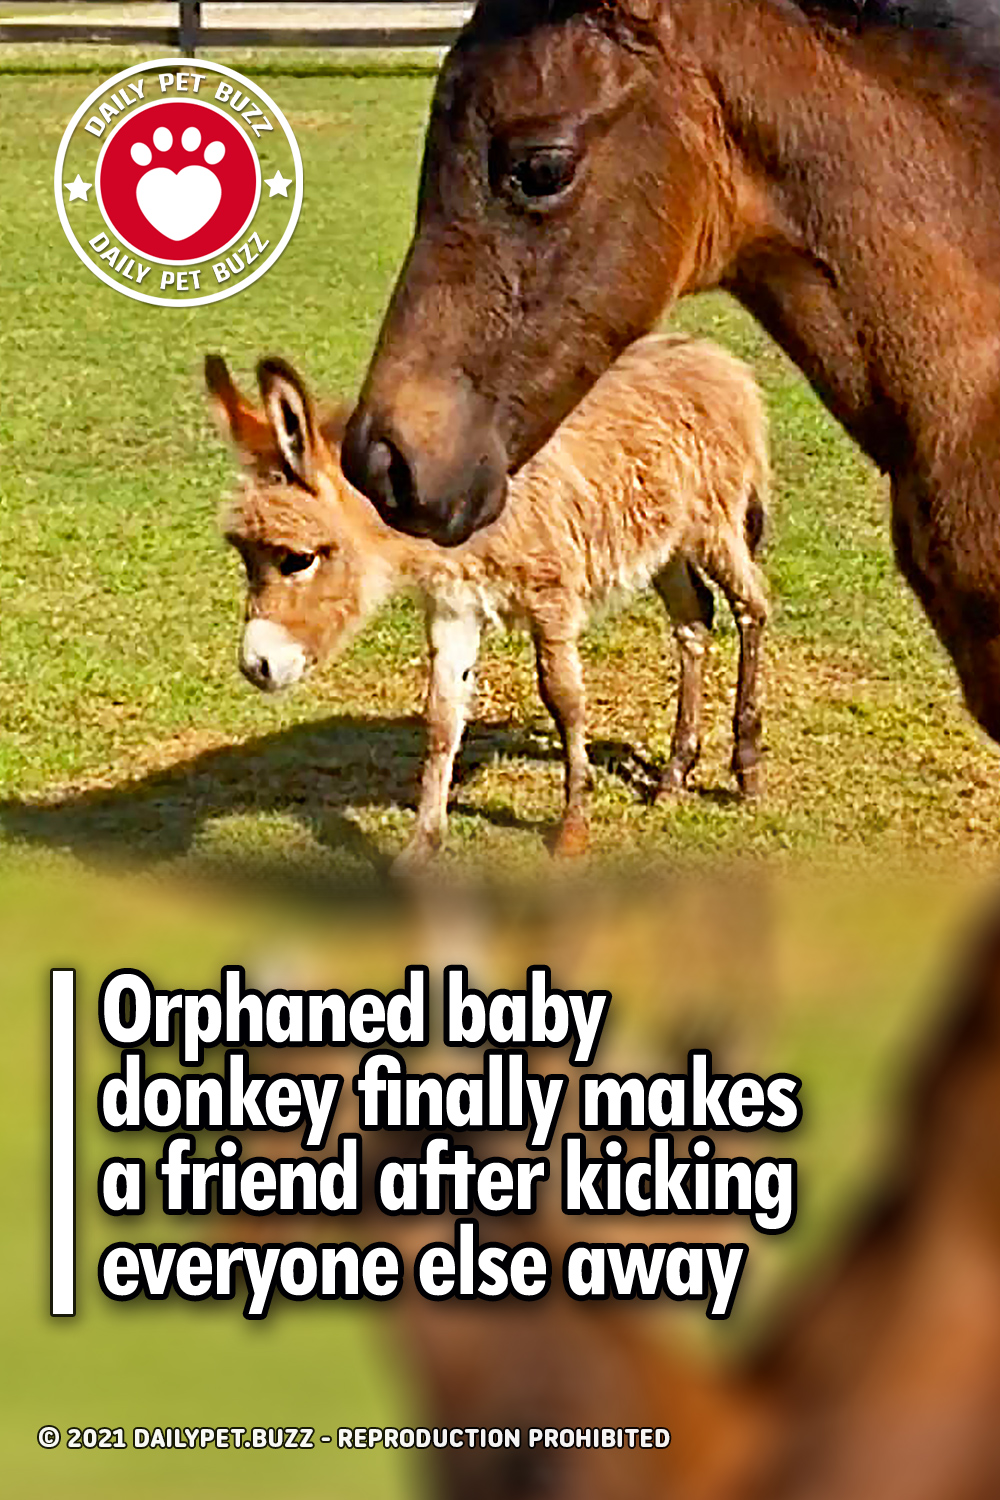 Orphaned baby donkey finally makes a friend after kicking everyone else away